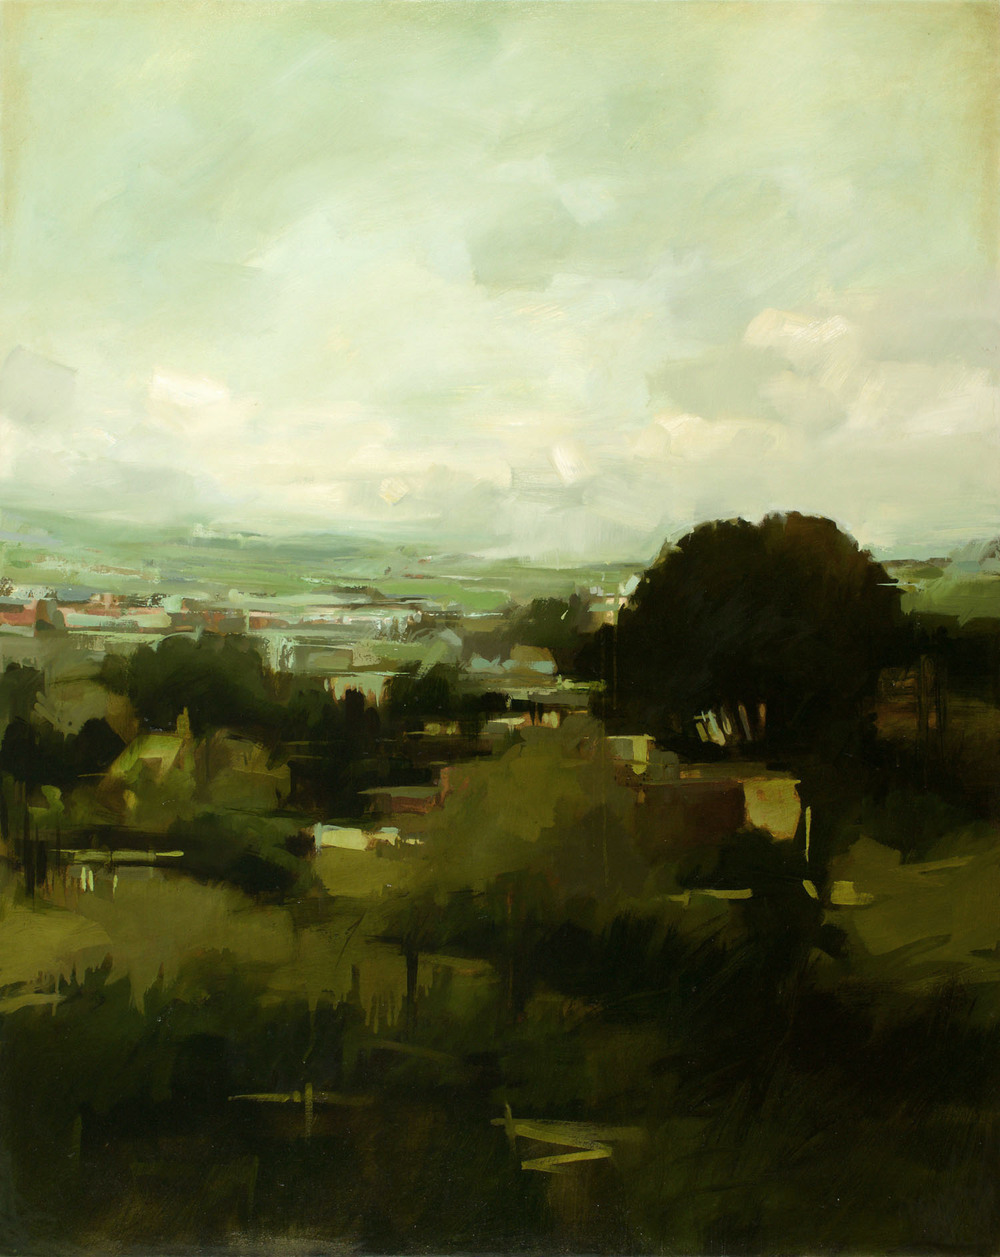 Overland I   60 x 48 inches  oil on canvas